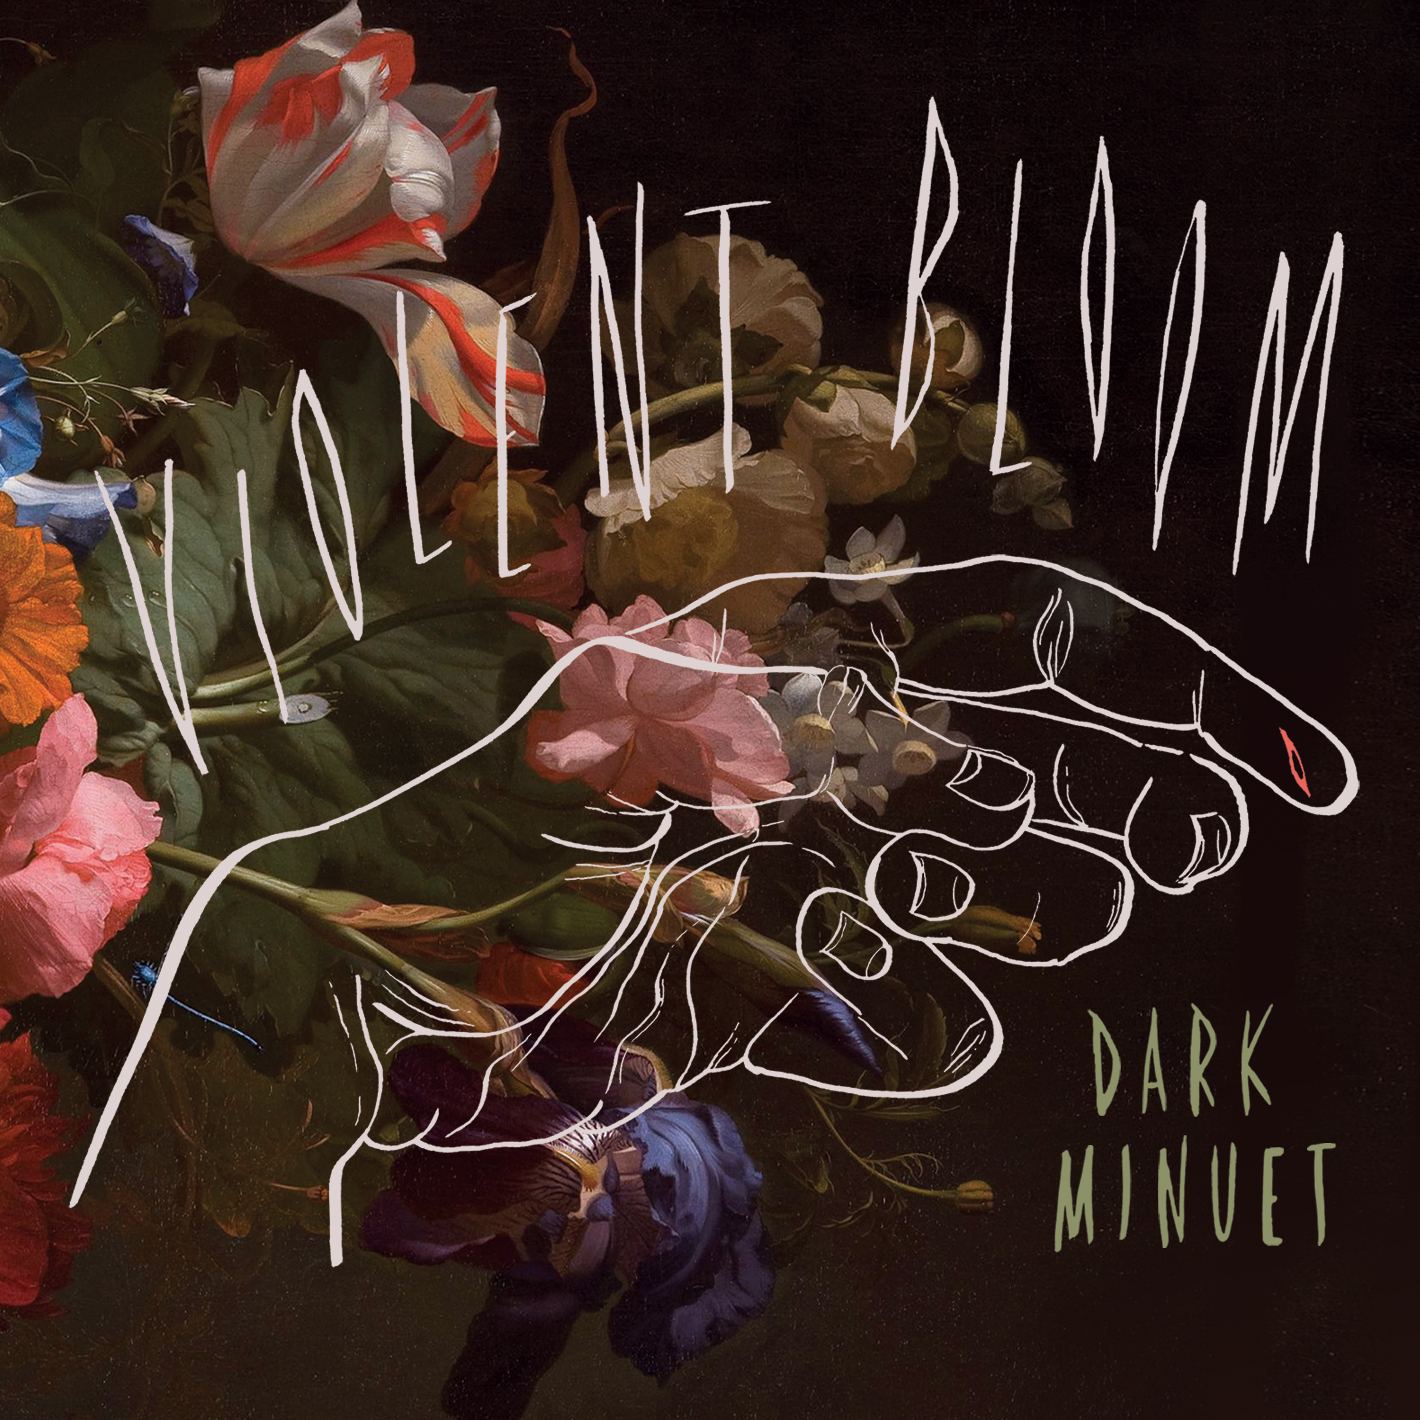 Dark Minuet LP $10